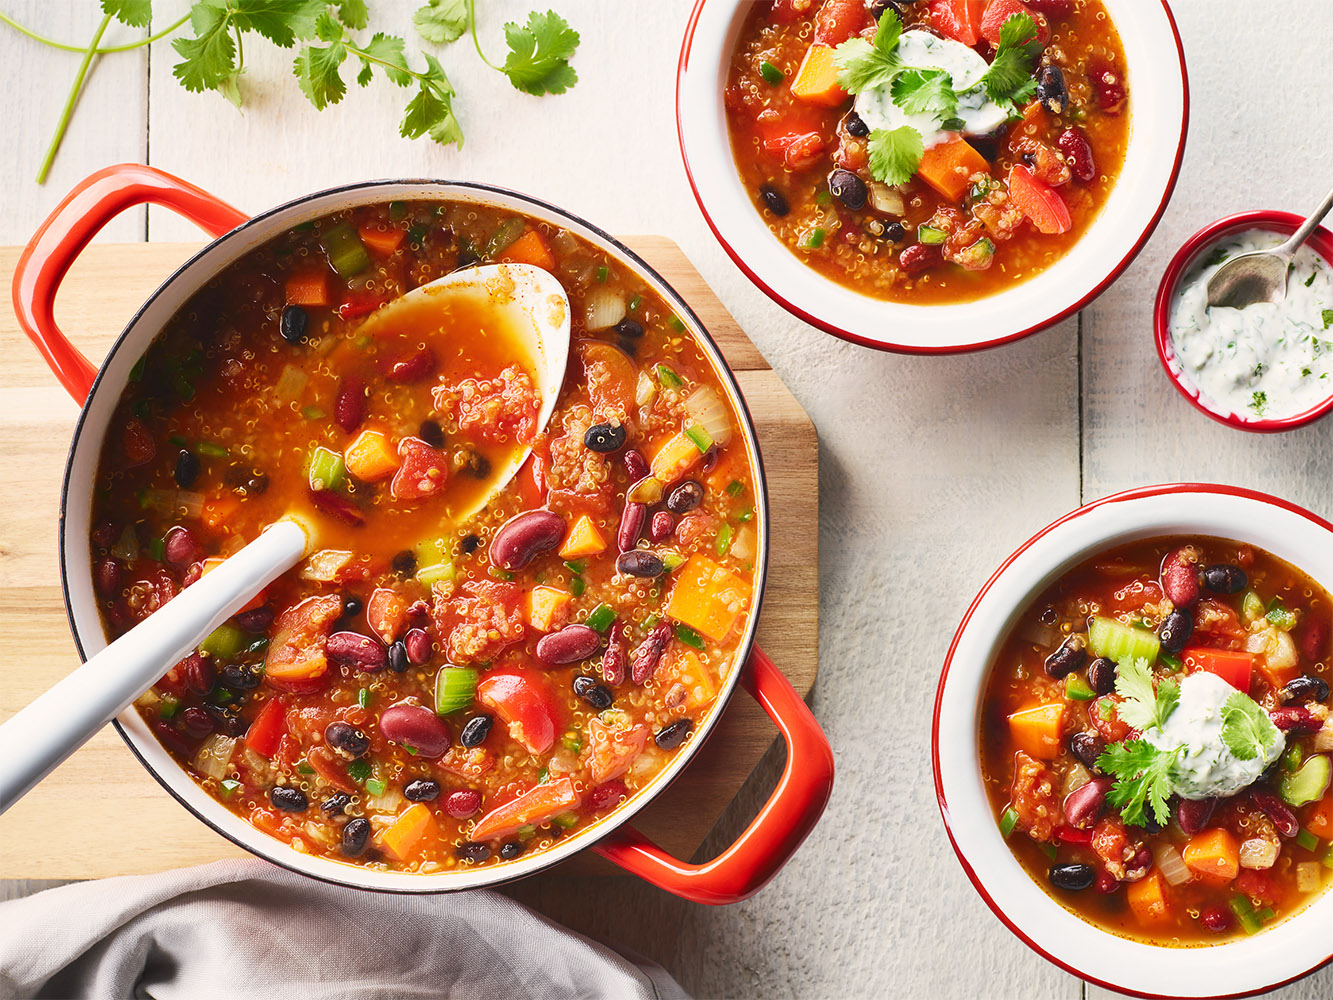 Vegetable Chili with Cilantro